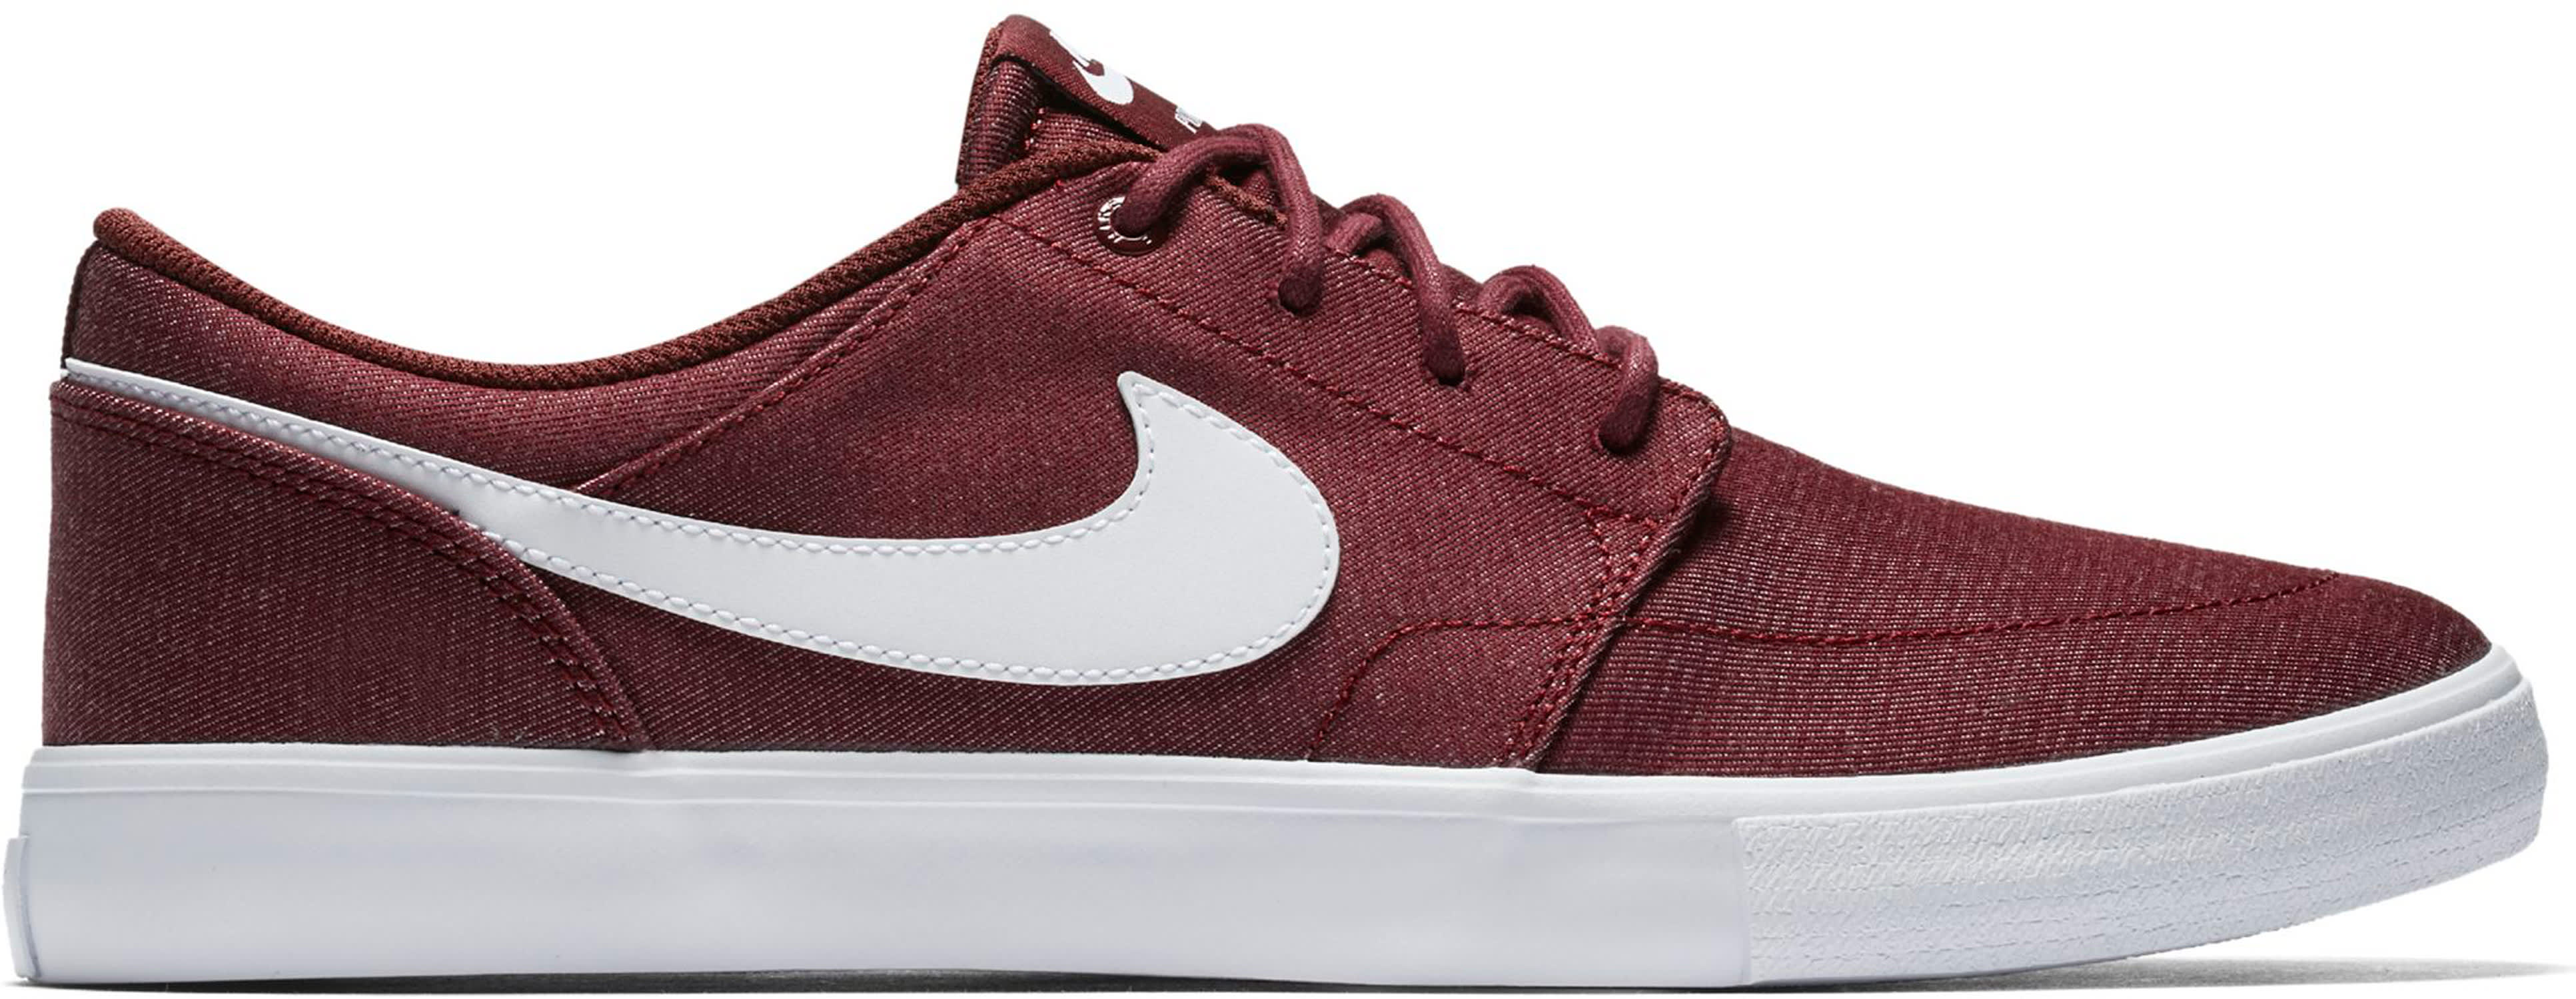 26e5abc8218b Nike SB Solarsoft Portmore II Canvas Skate Shoes - thumbnail 1